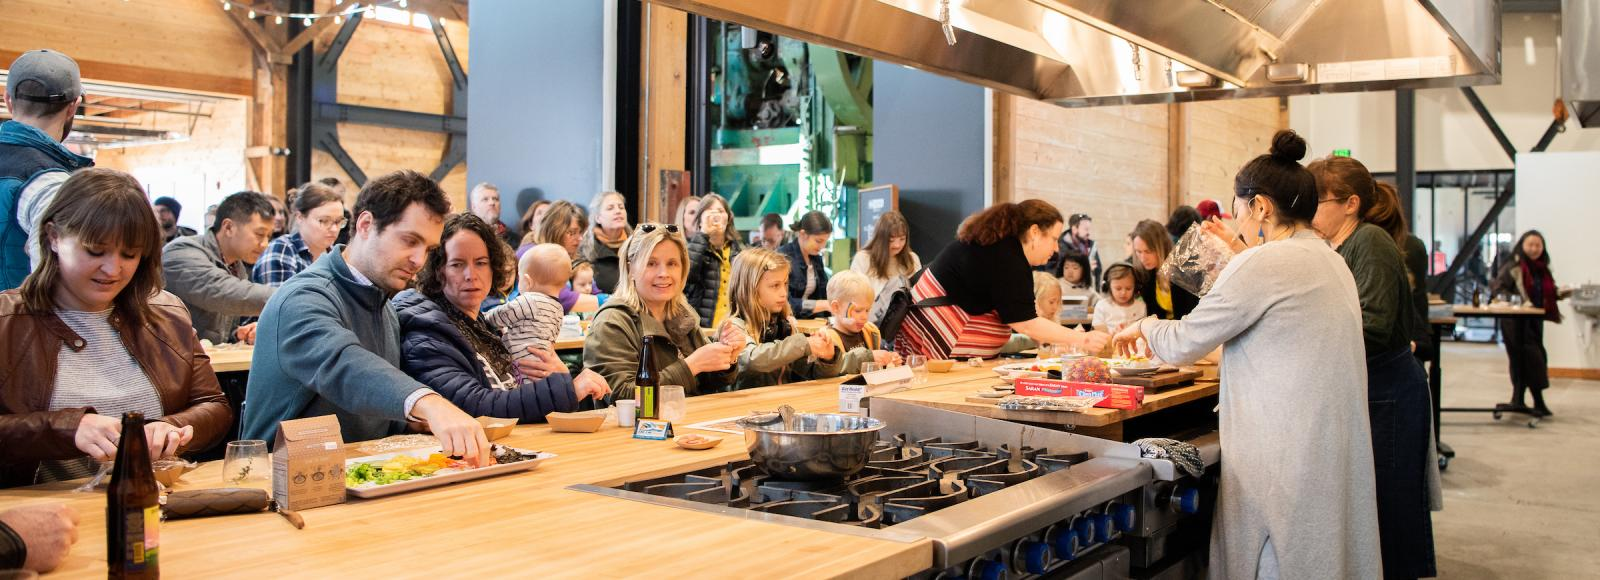 A crowd of people sit at counters watching two women in a large demonstration kitchen